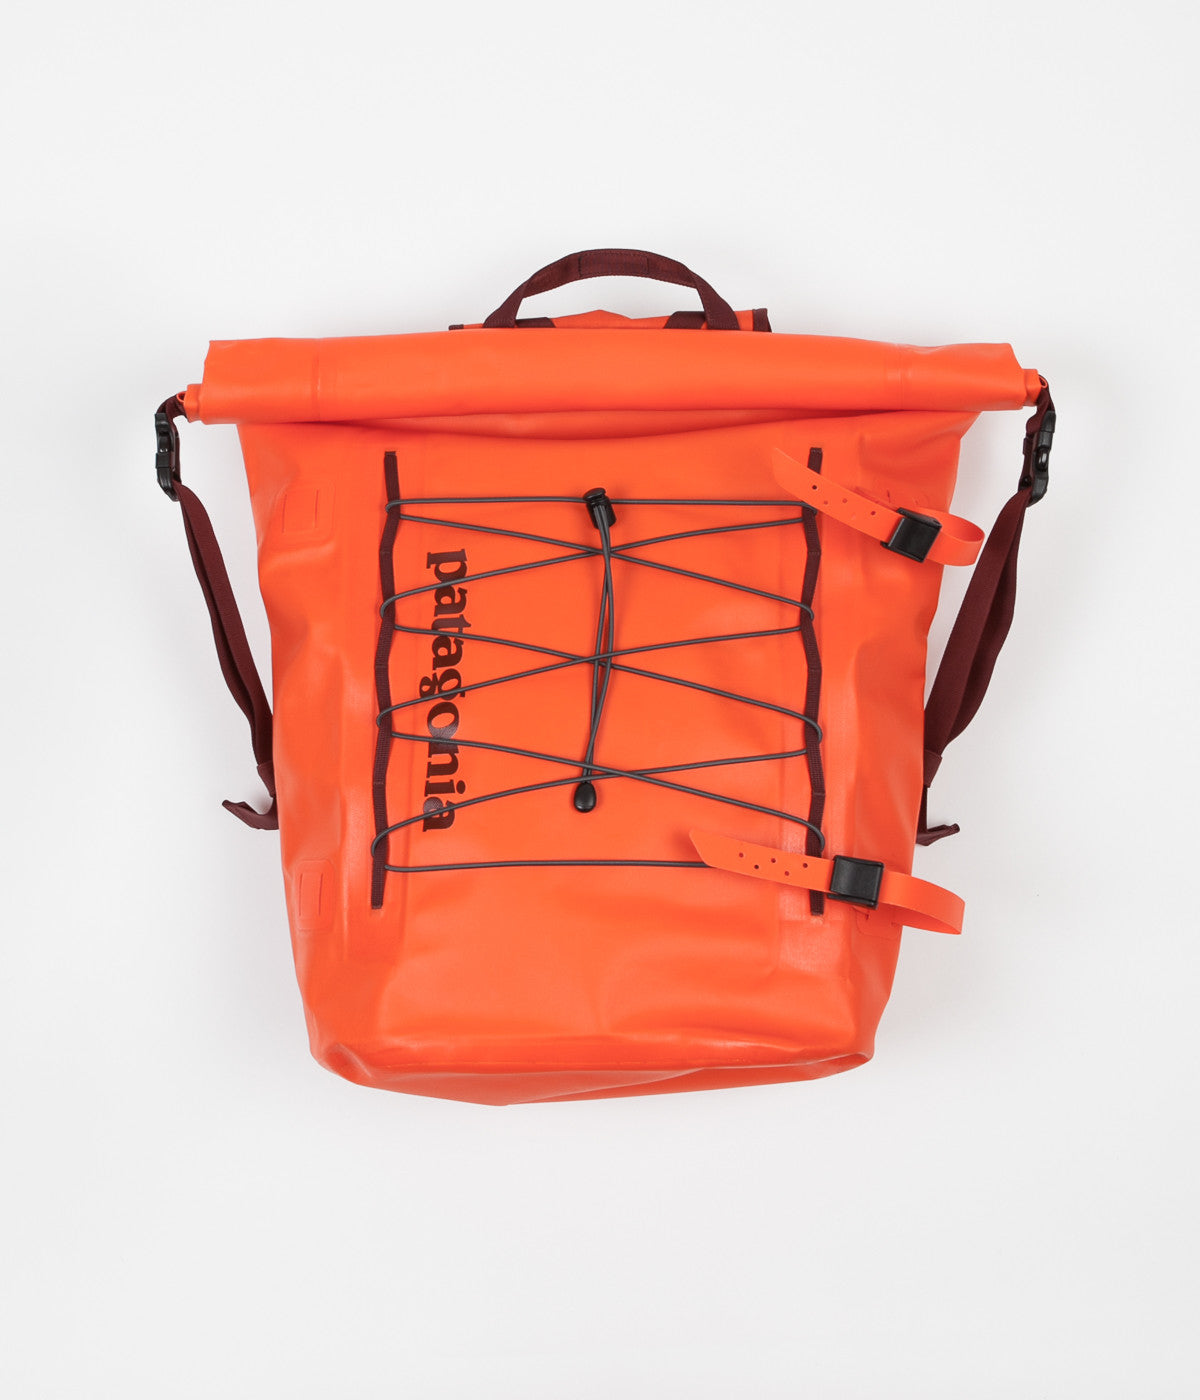 Patagonia Stormfront Roll Top Backpack - Cusco Orange